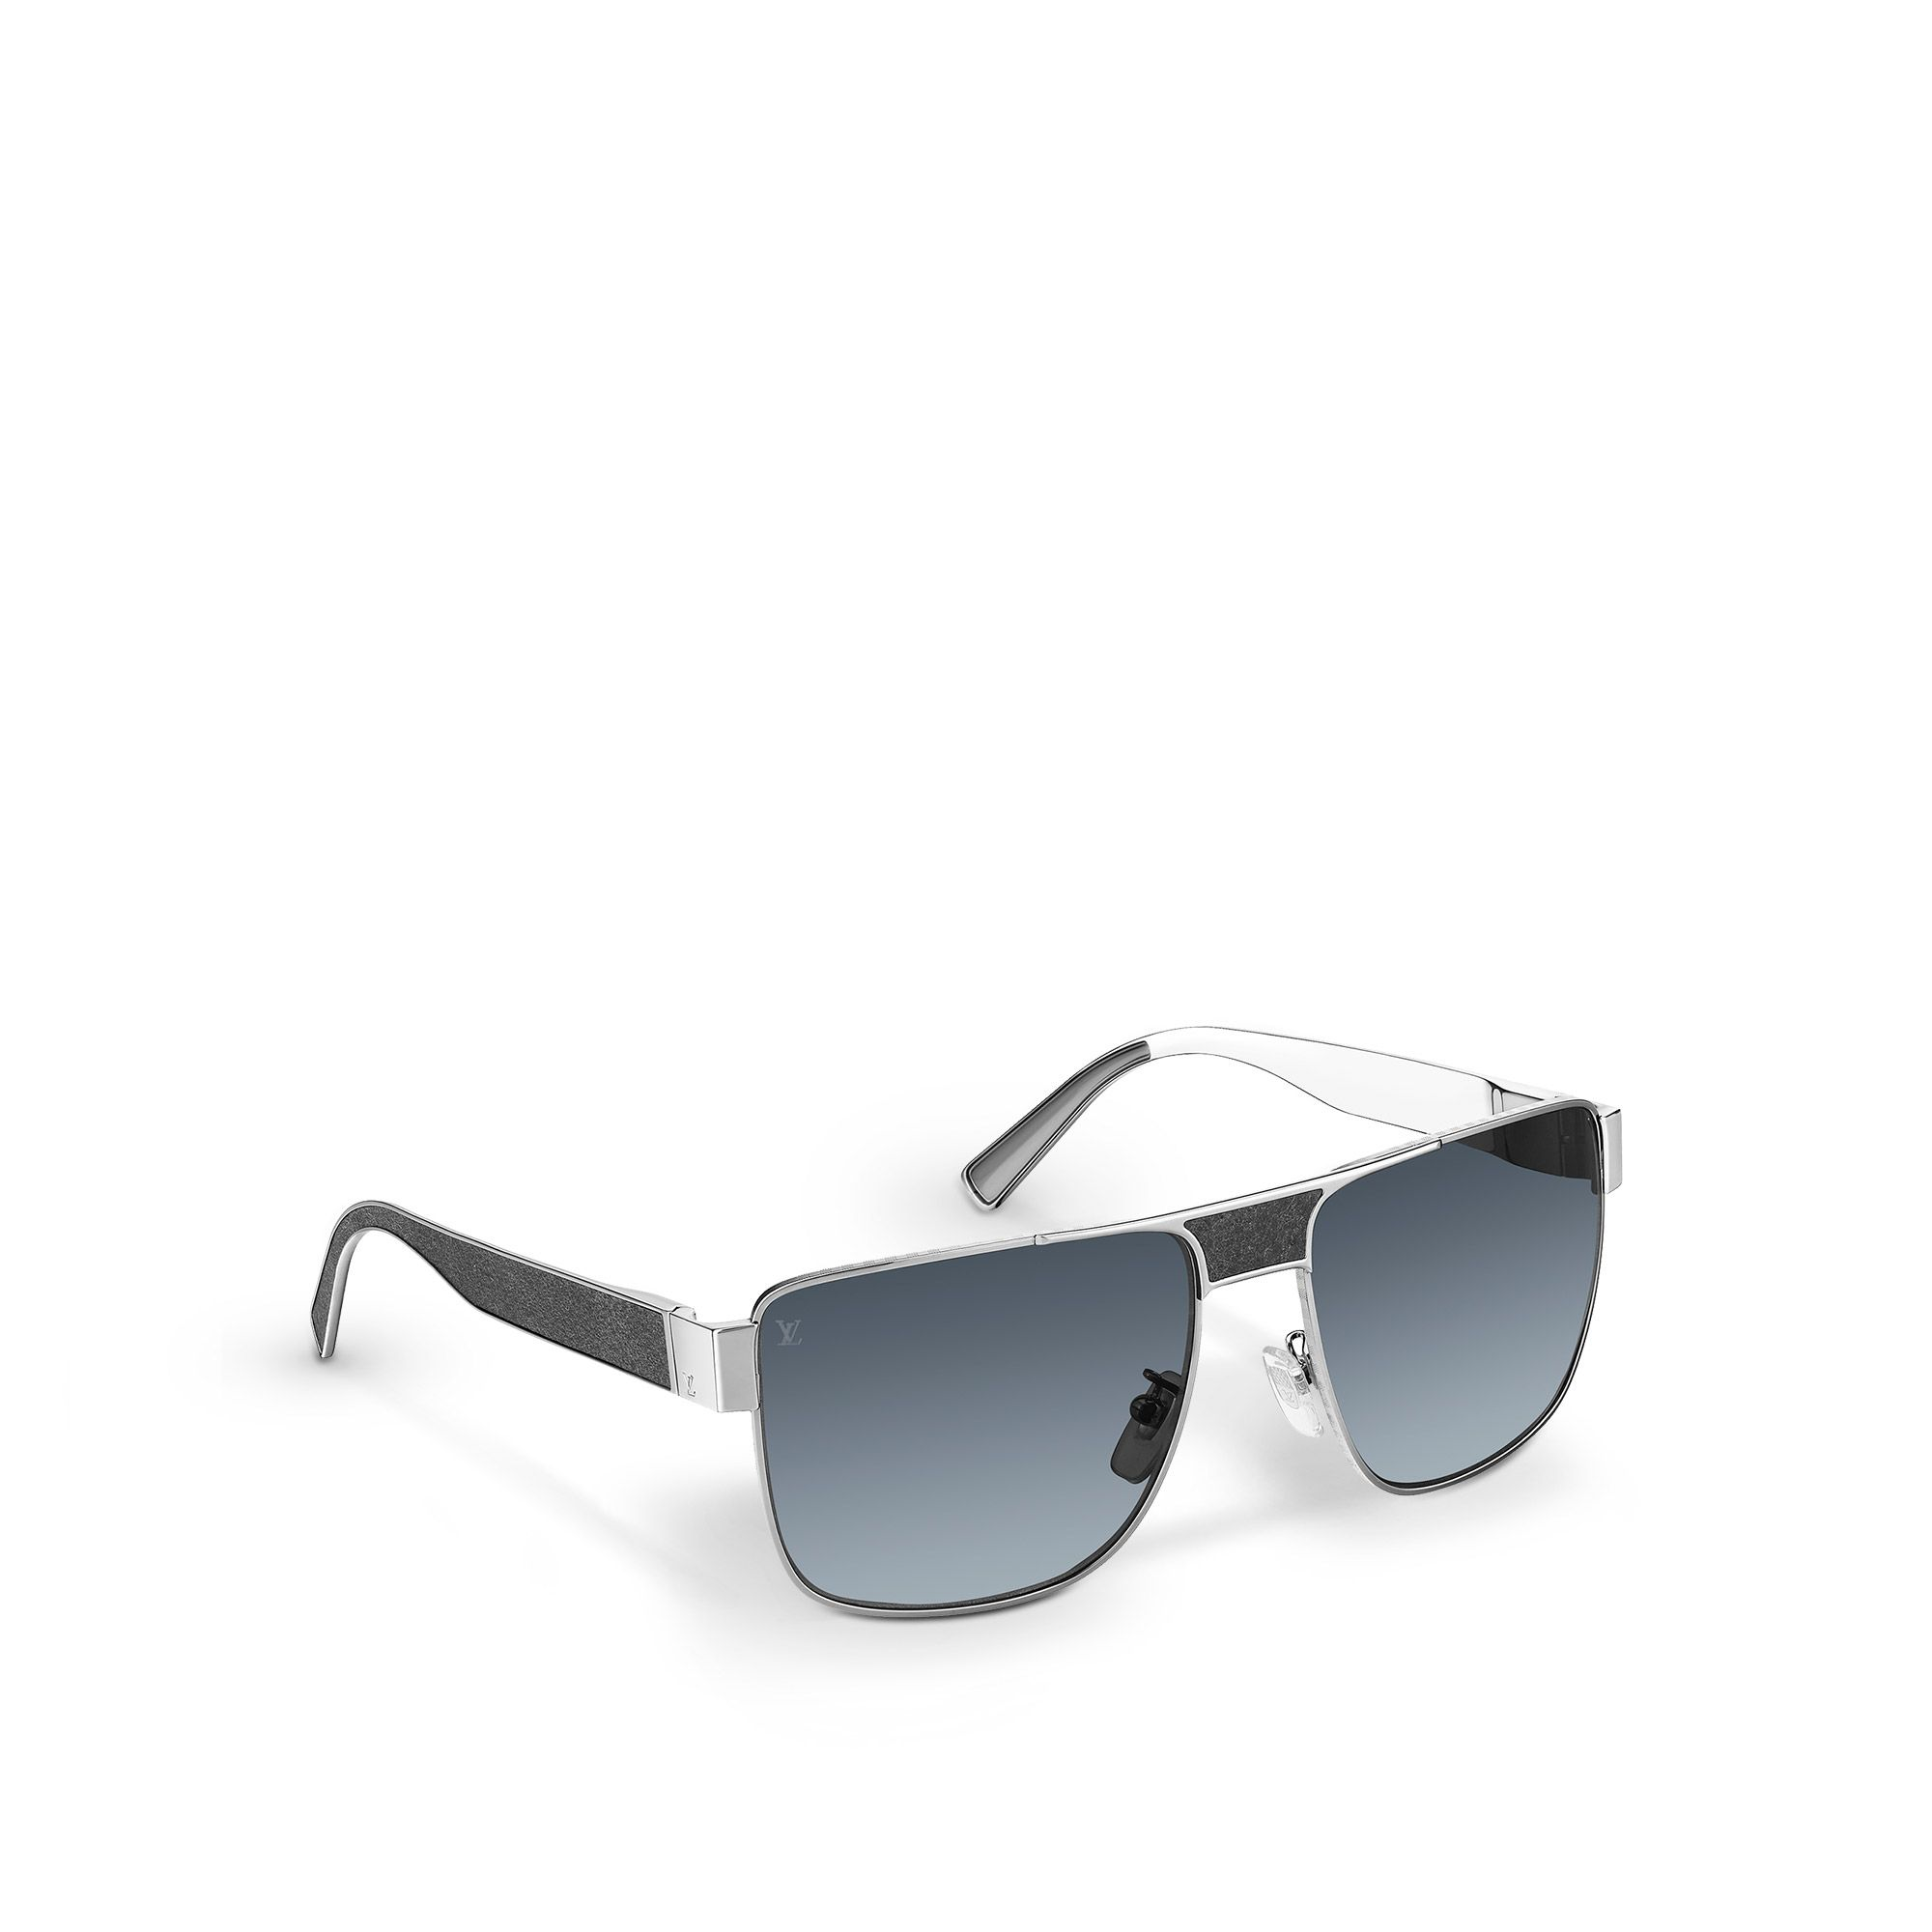 Available in silver and gold, the Louis Vuitton Jimmy Mix sunglasses ...